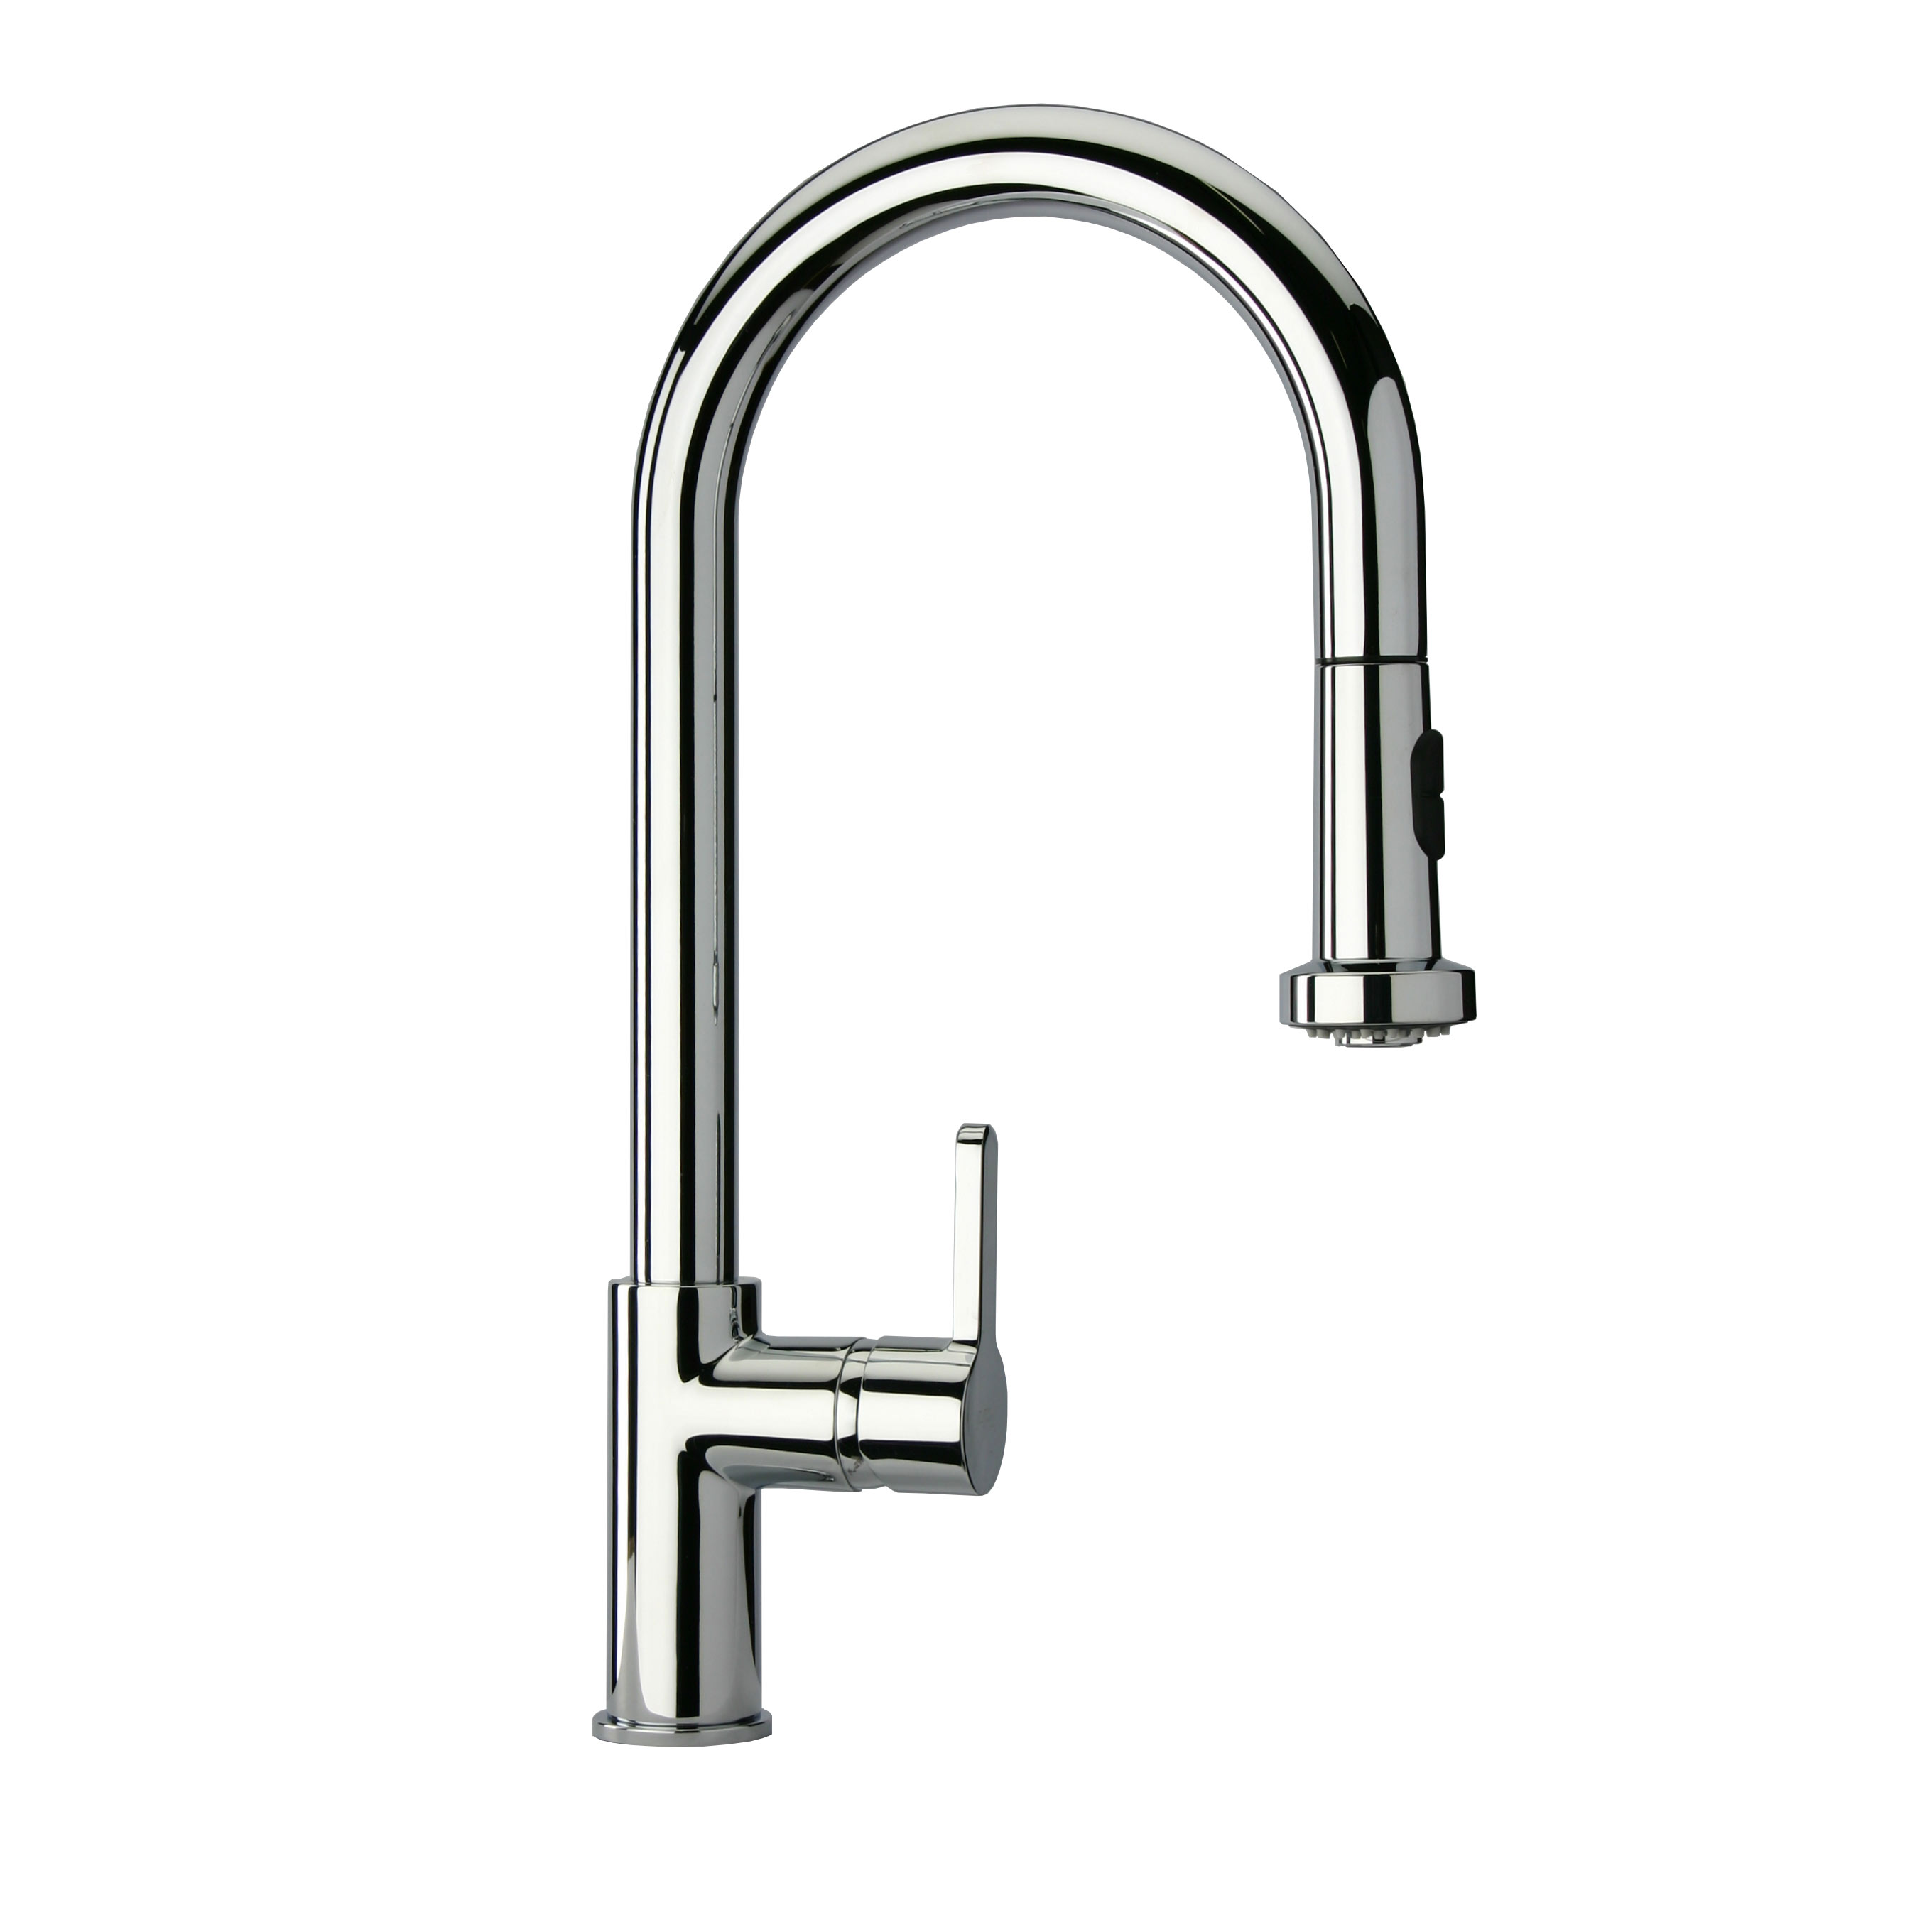 LaToscana-92CR591LL  SINGLE HANDLE PULL-DOWN SPRAY KITCHEN FAUCET IN CHROME